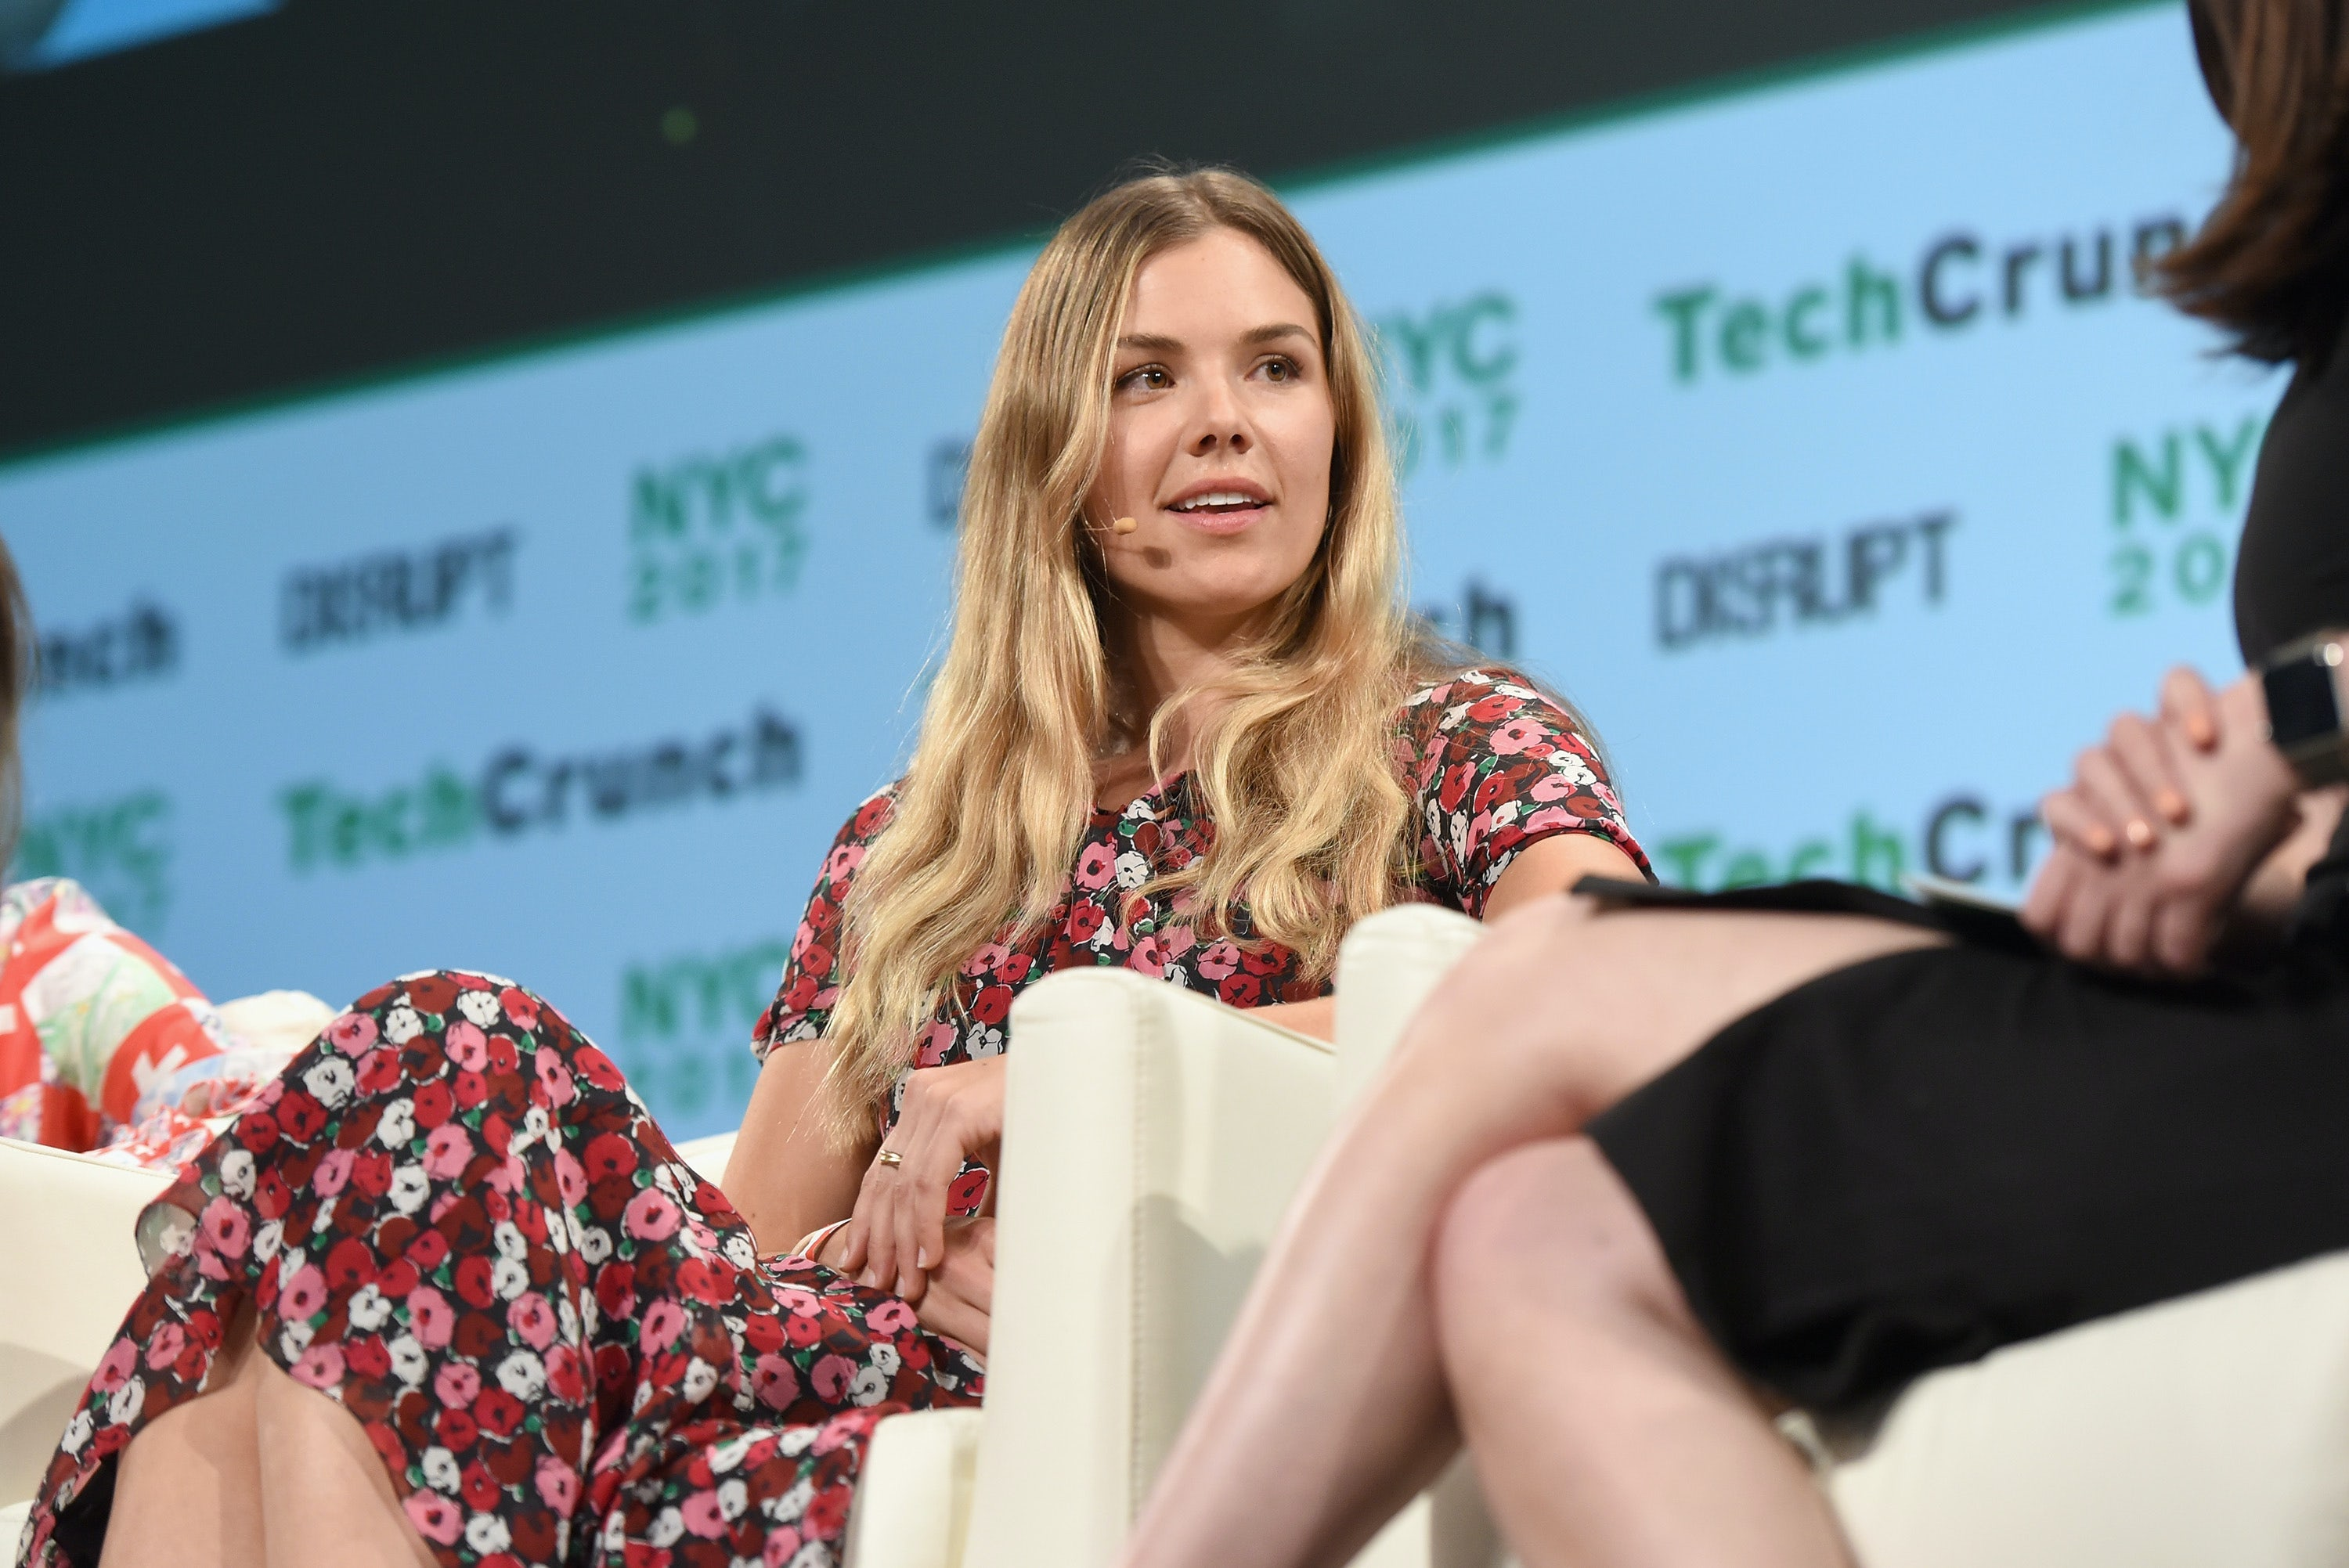 Outdoor Voices Founder Tyler Haney | Source: Noam Galai/Getty Images for TechCrunch